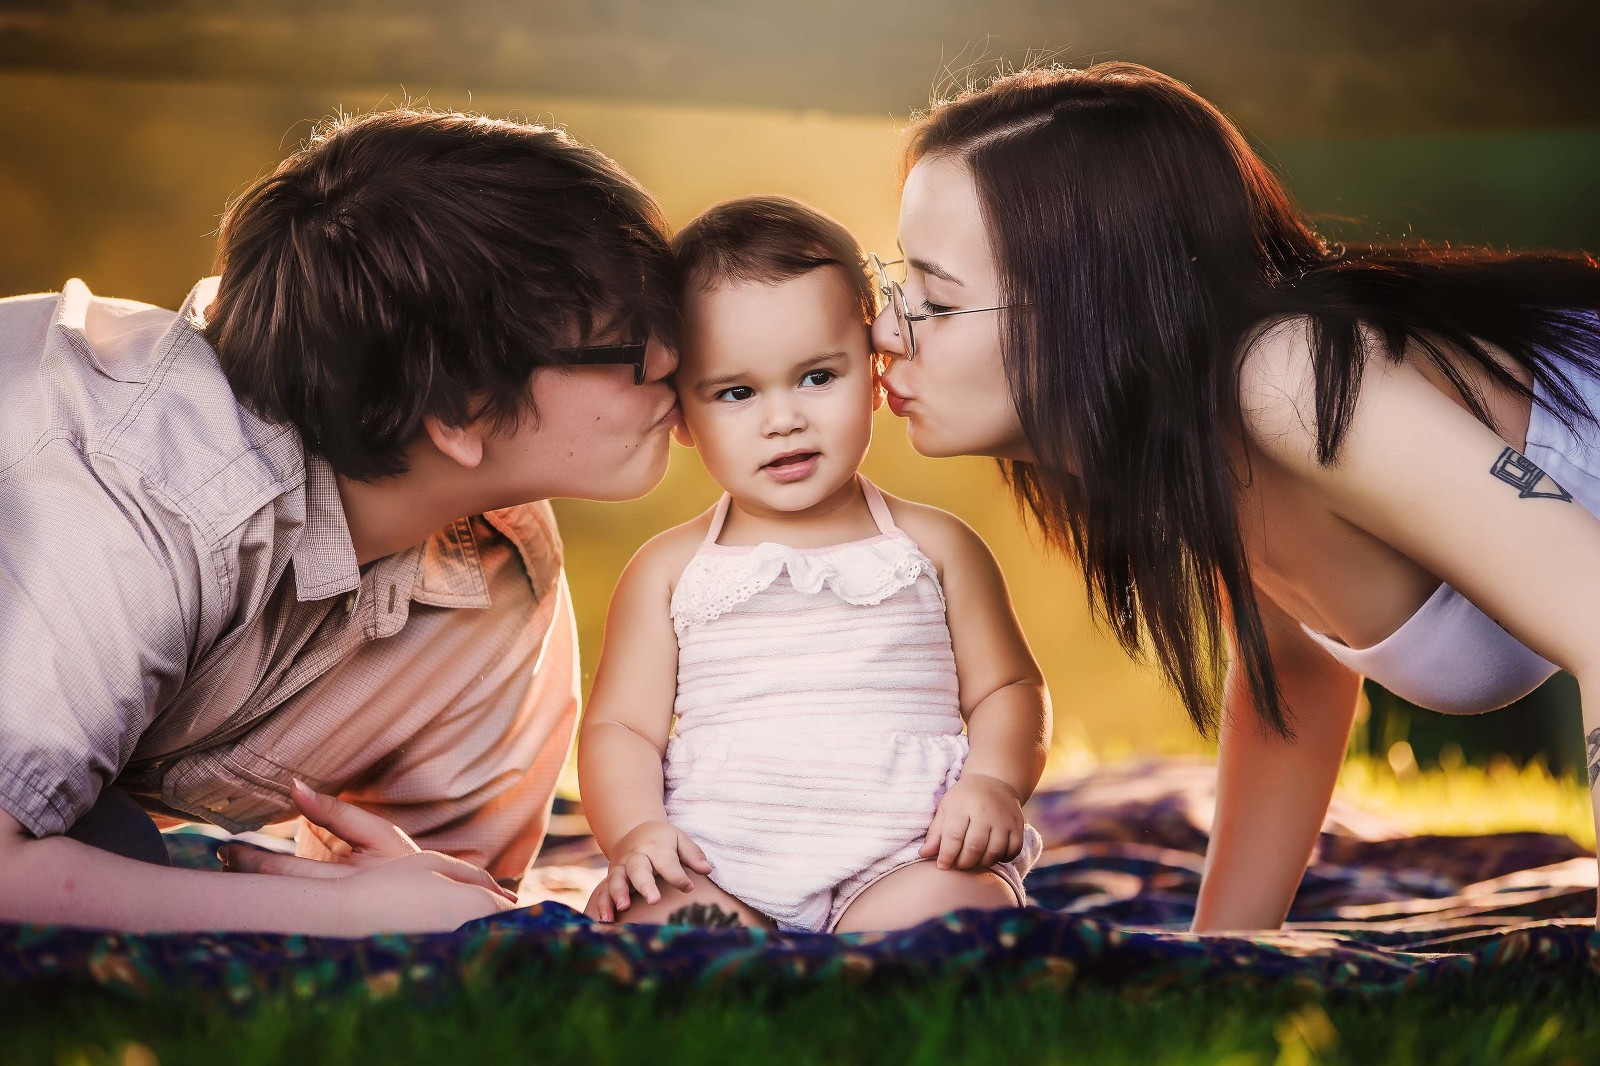 DC and northern virginia styled family photographer